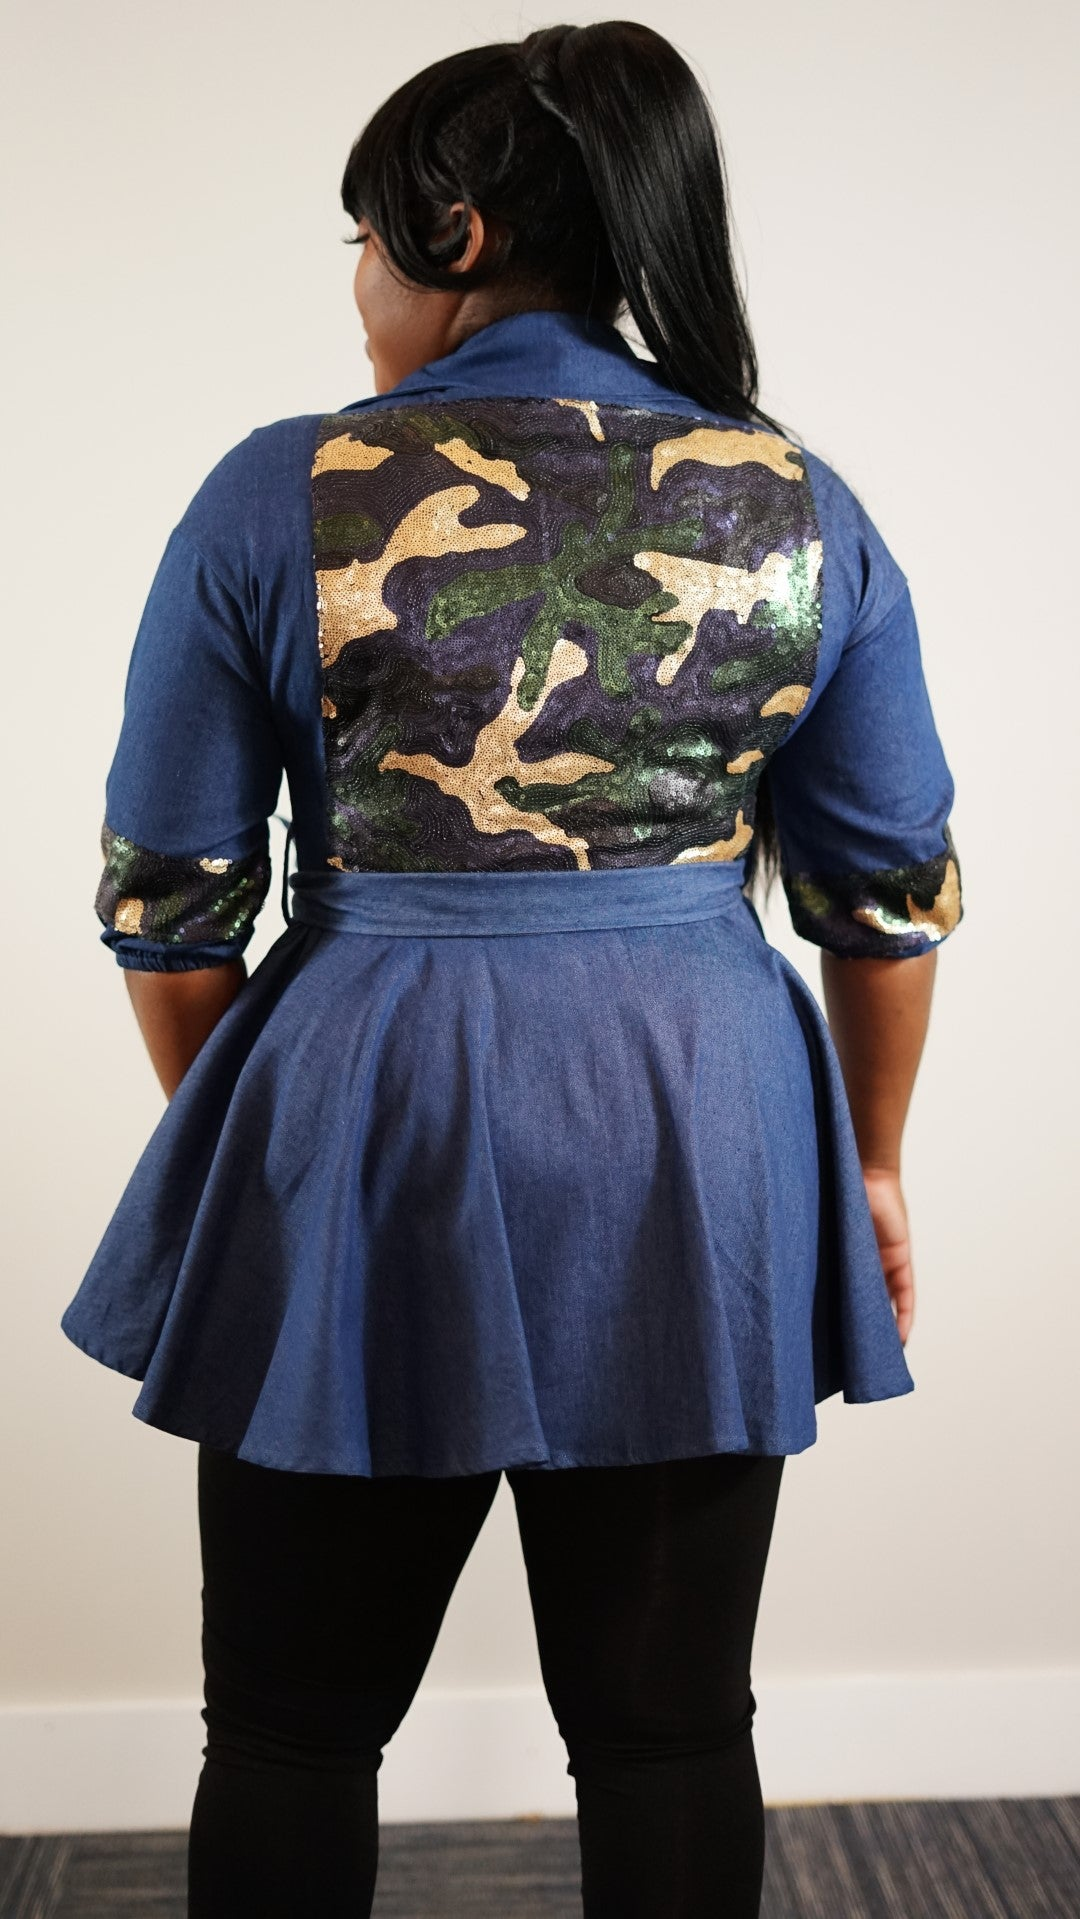 Back knee up view of plus size model in a Dazzling Back Camo Jacket With Tie Belt